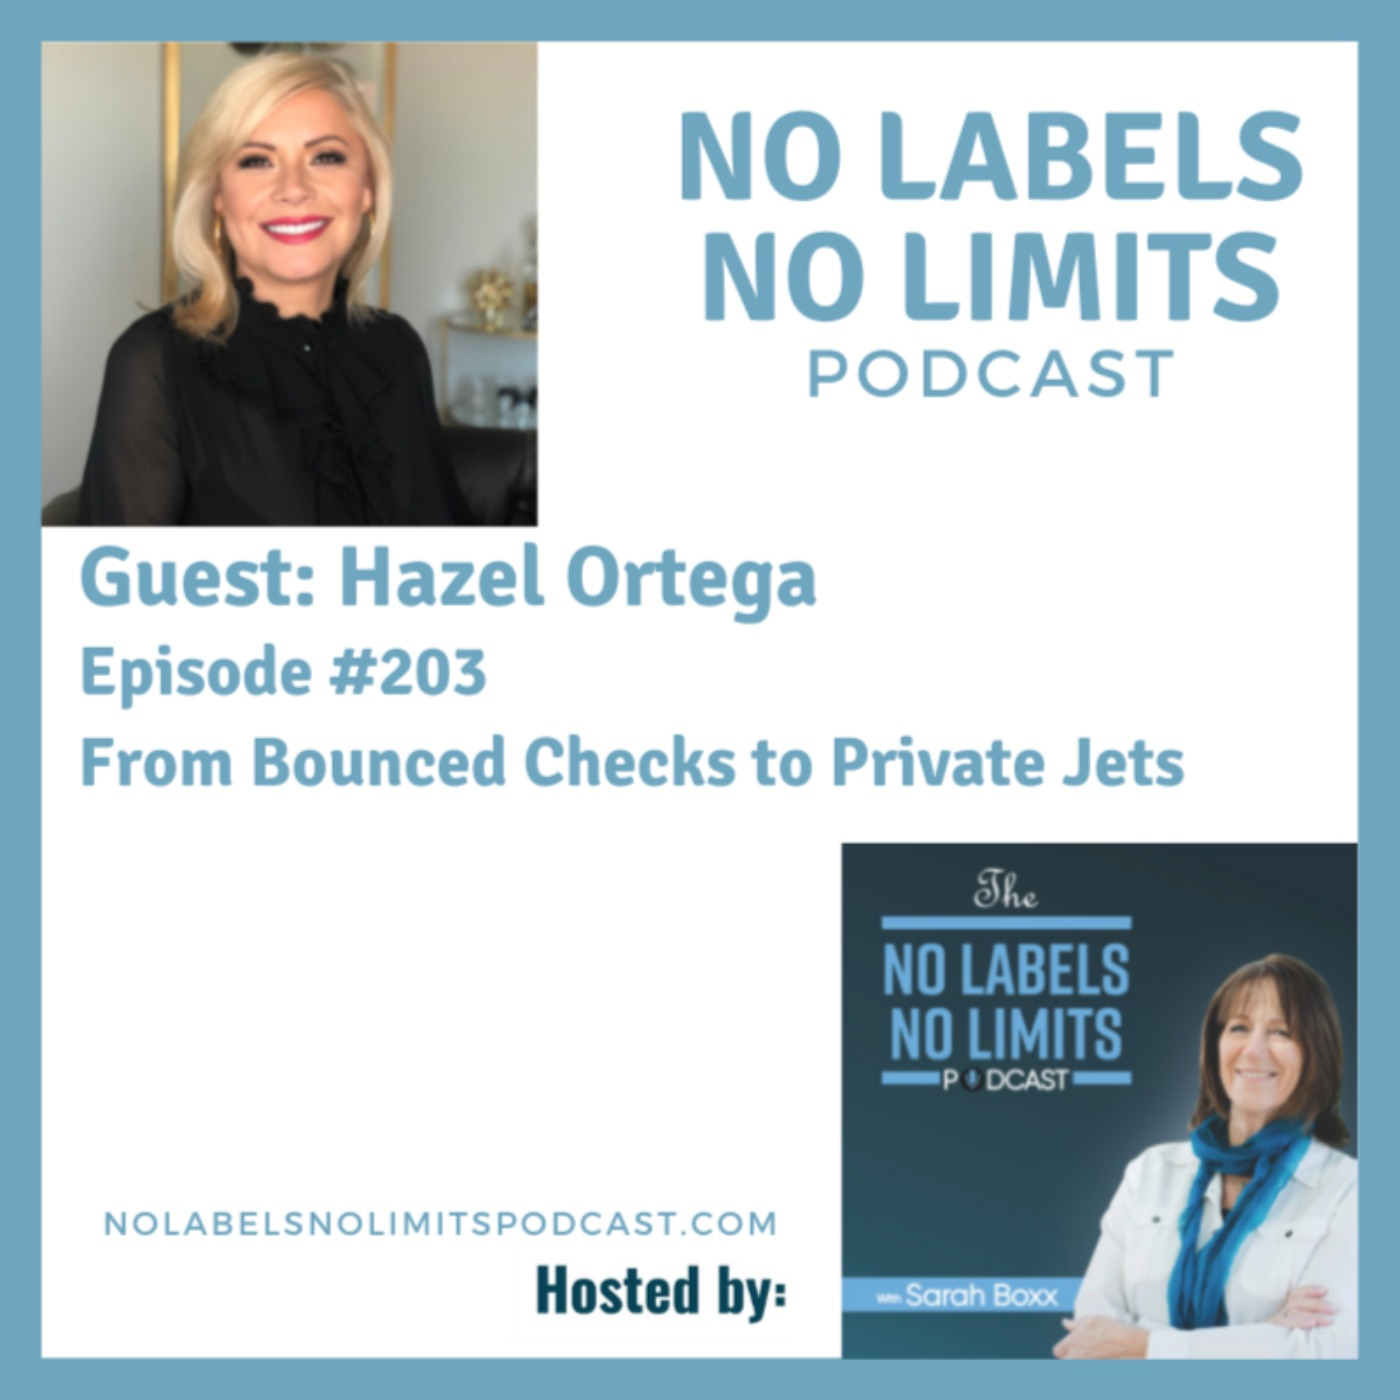 203 - From Bounced Checks to Private Jets with Hazel Ortega